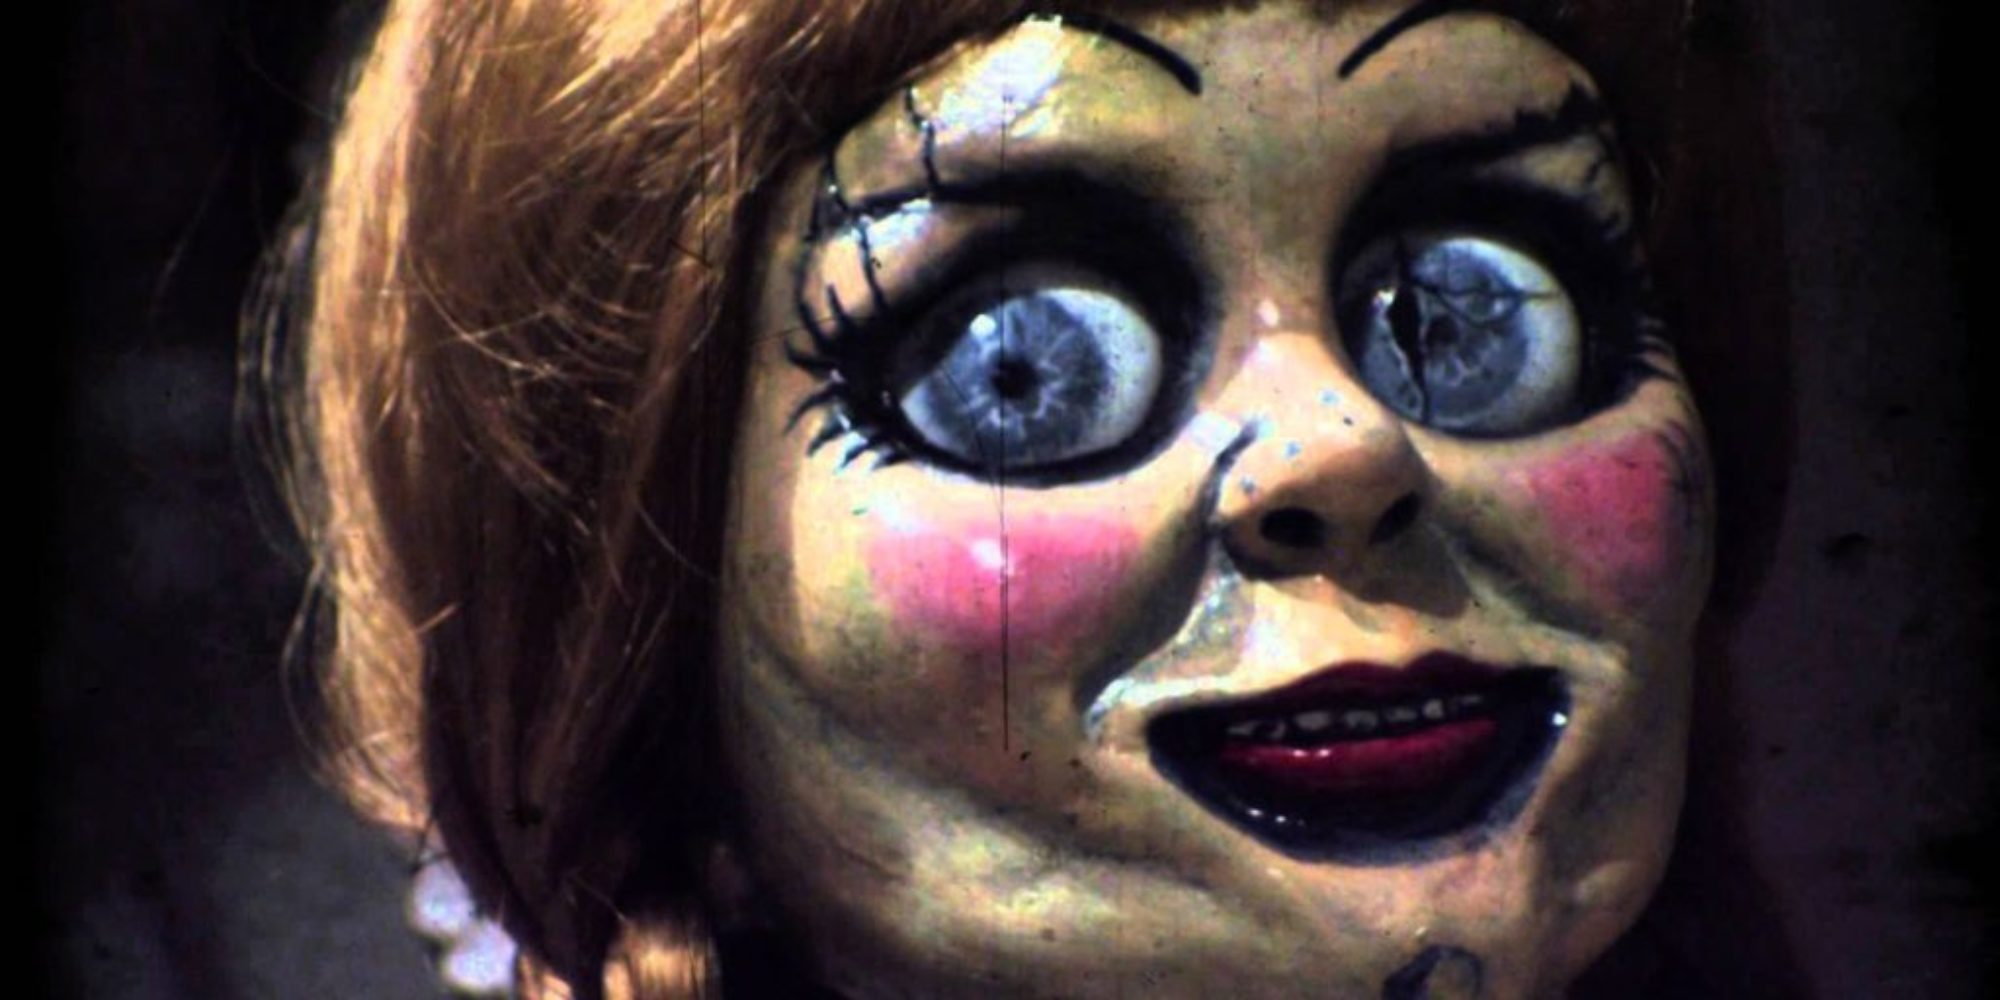 The True story of Annabelle the Doll